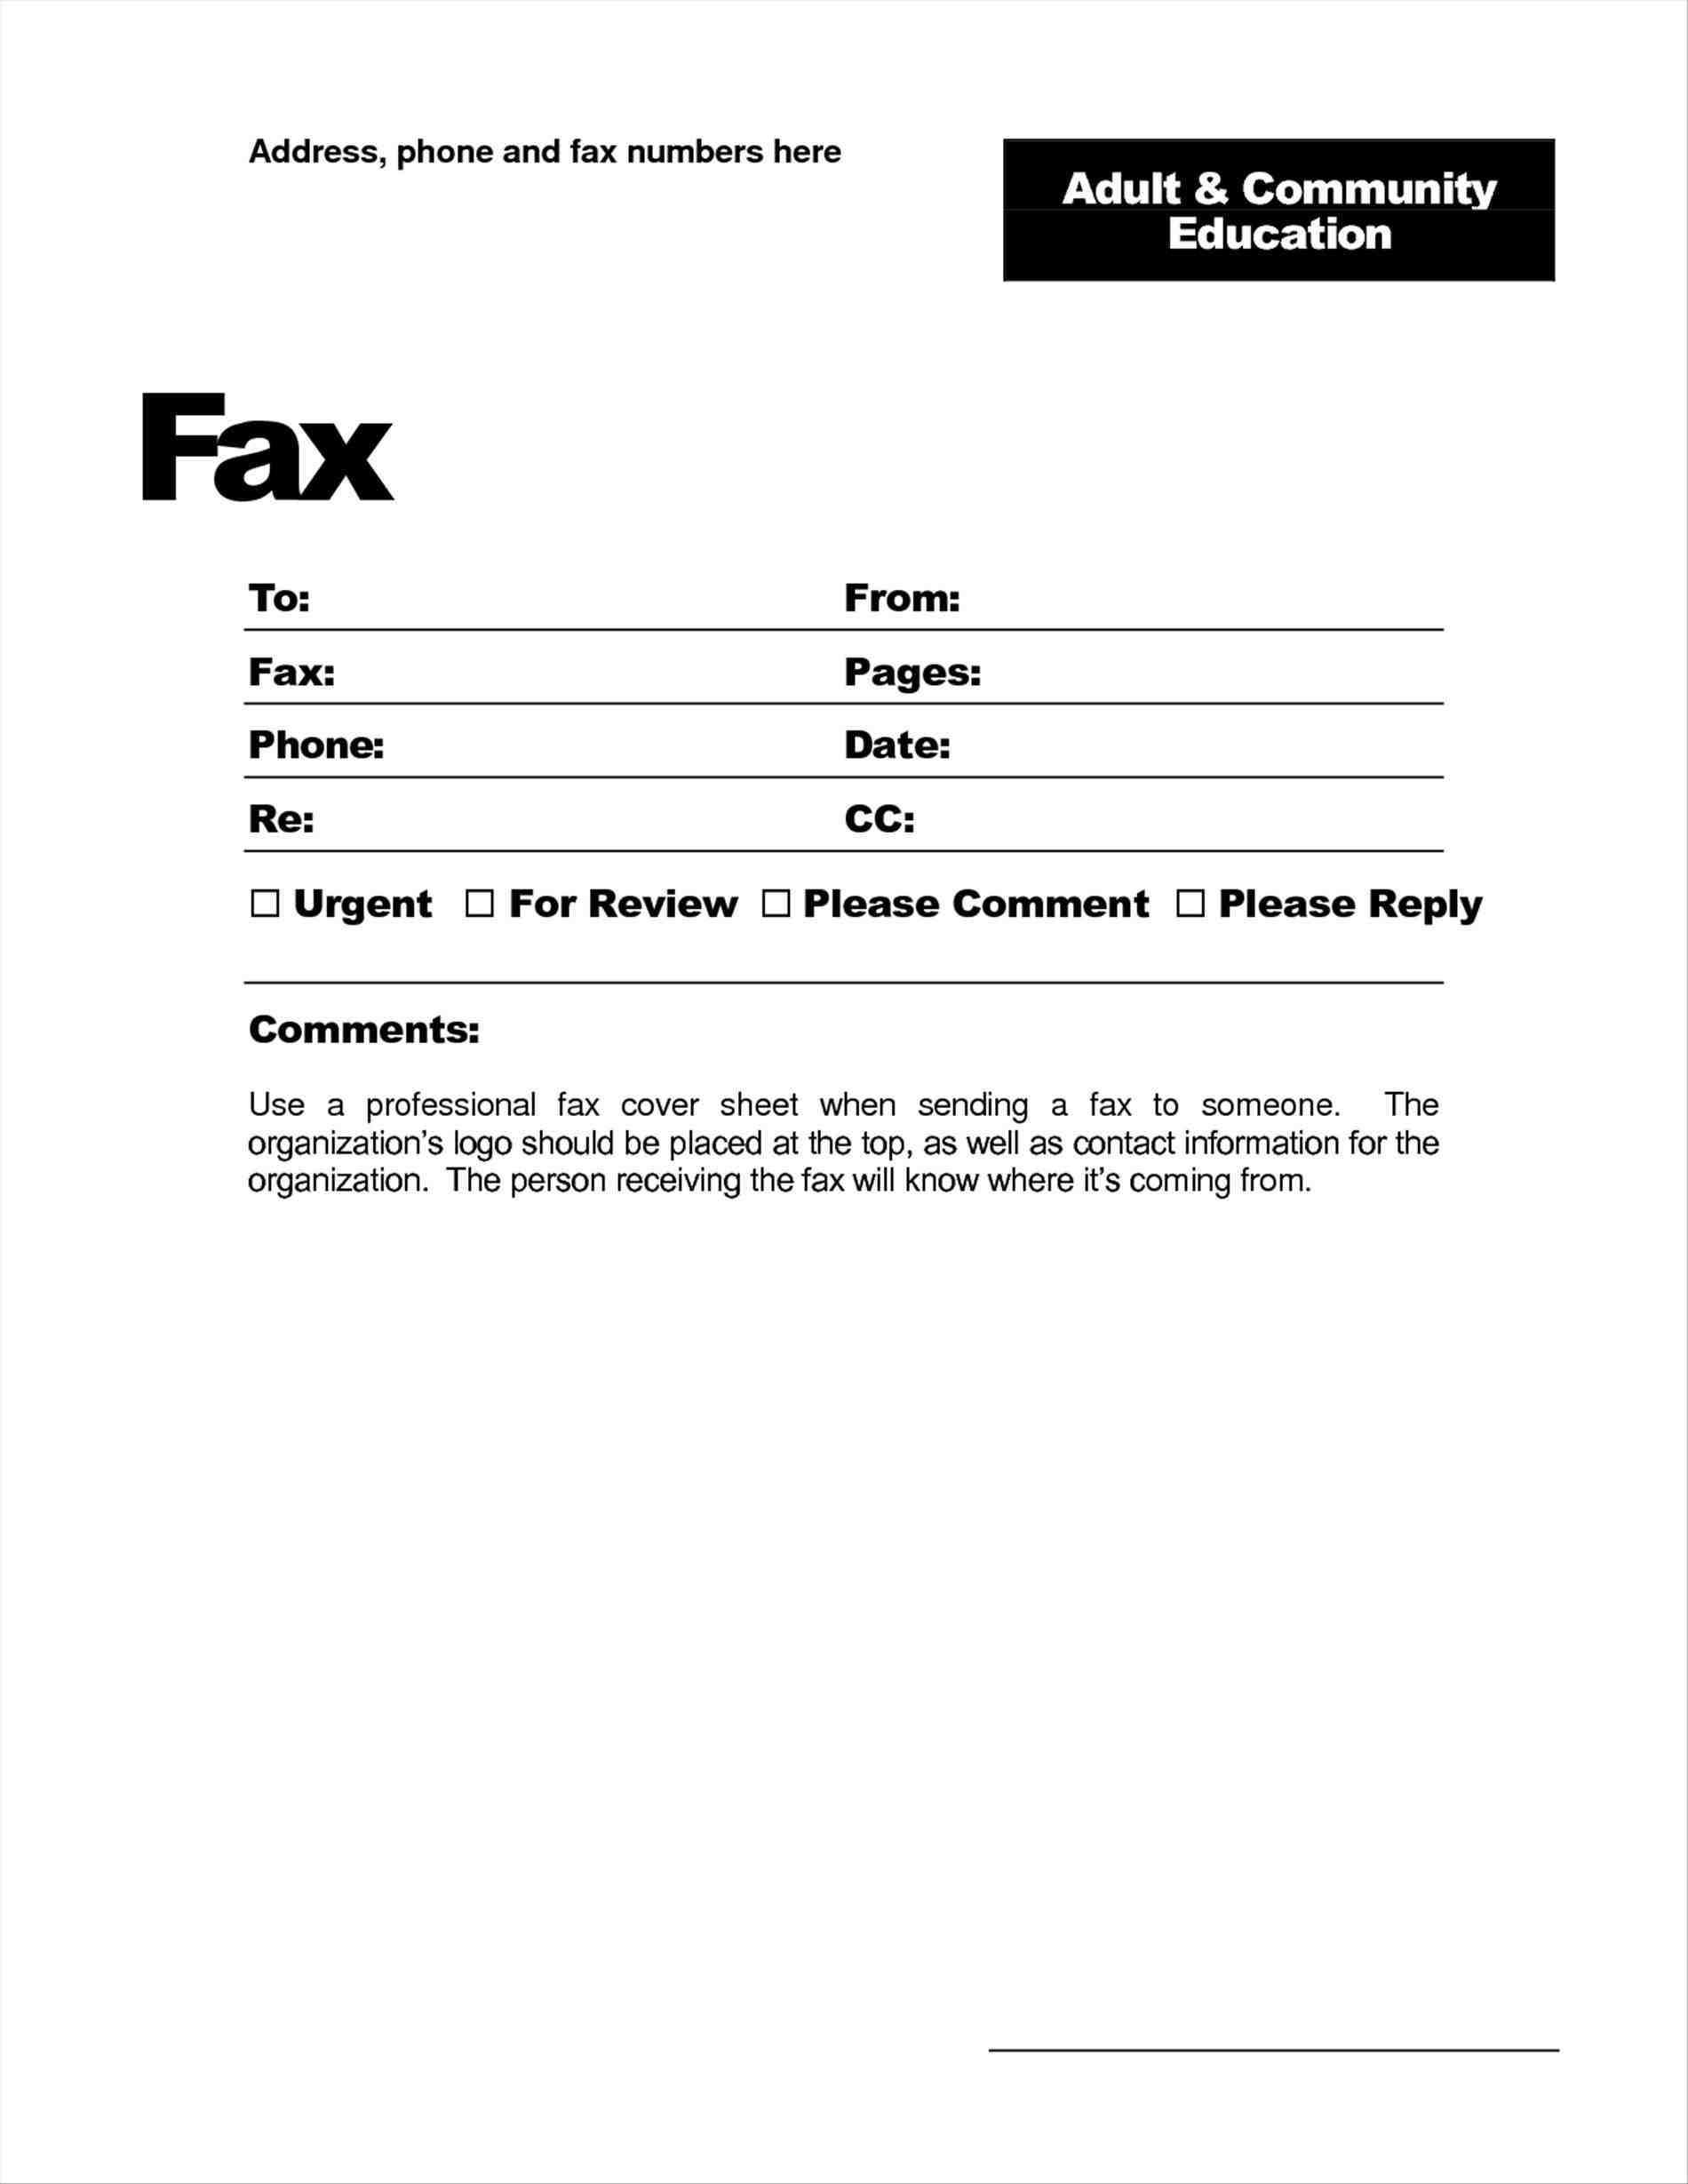 028 Basic Fax Cover Sheet Template Free Printable Example Pertaining To Fax Cover Sheet Template Word 2010